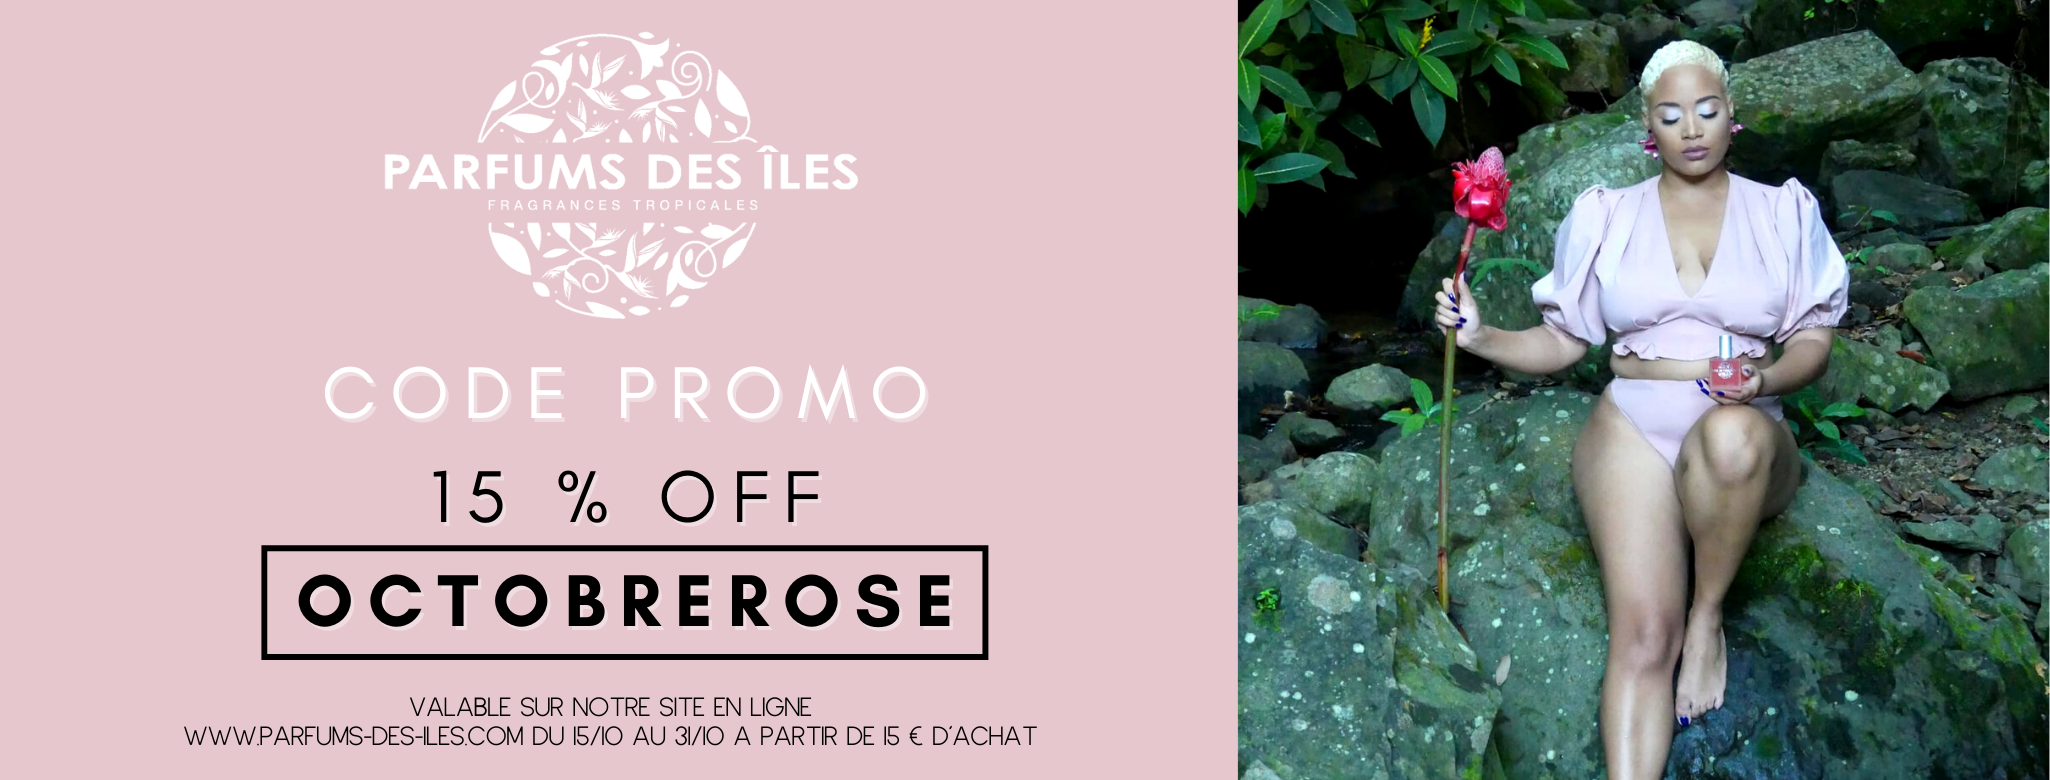 CODE PROMO OCTOBRE ROSE